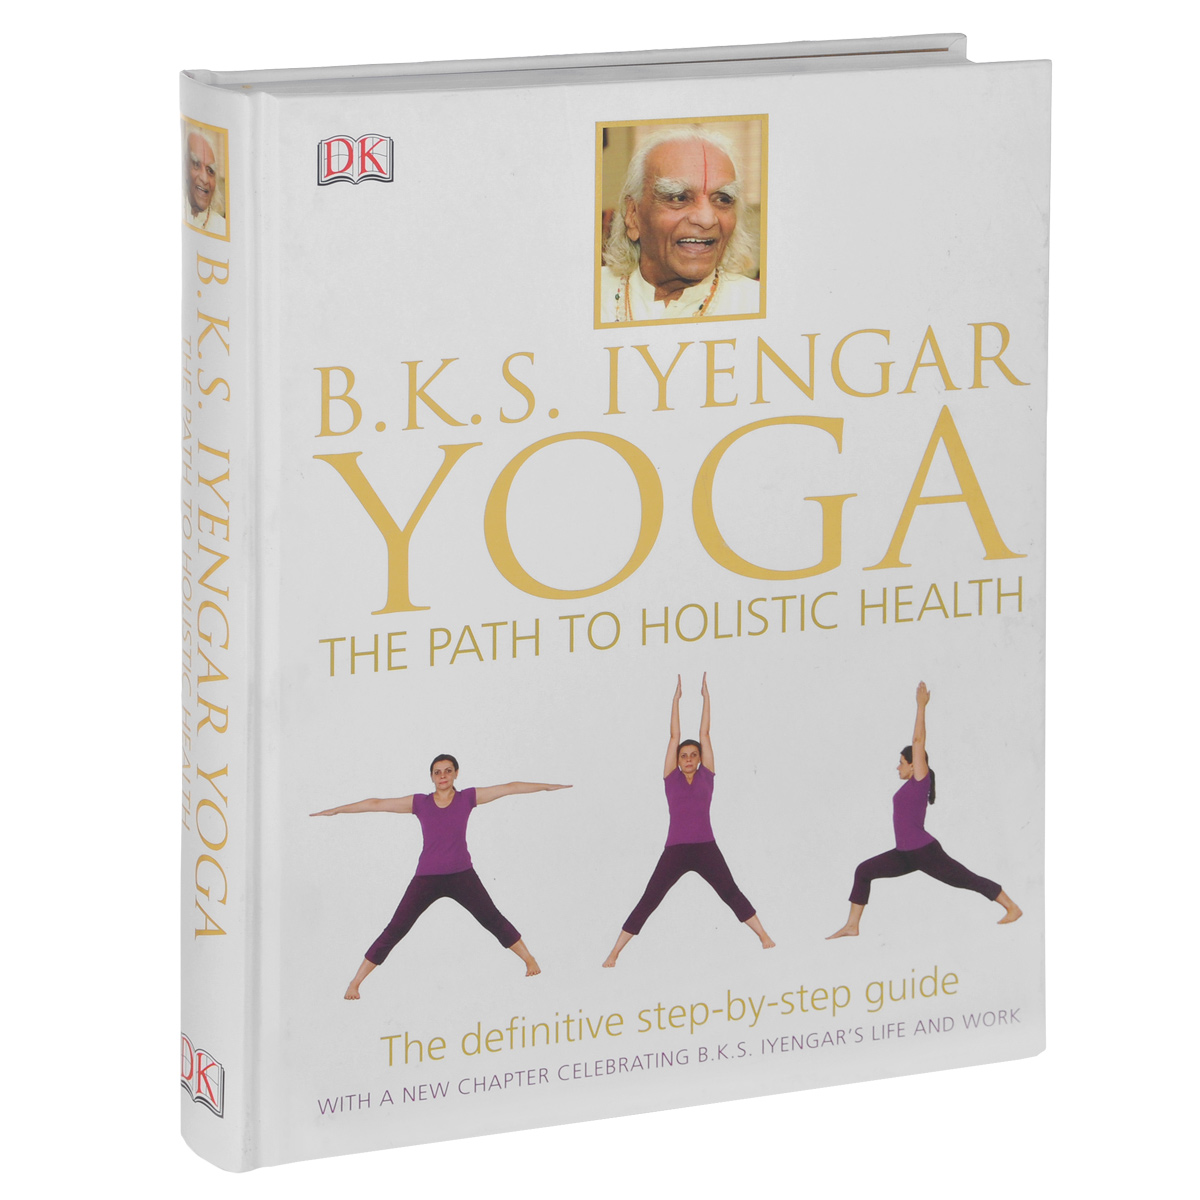 B.K.S. Iyengar Yoga: The Path to Holistic Health balck and blue sleeveless yoga tracksuit